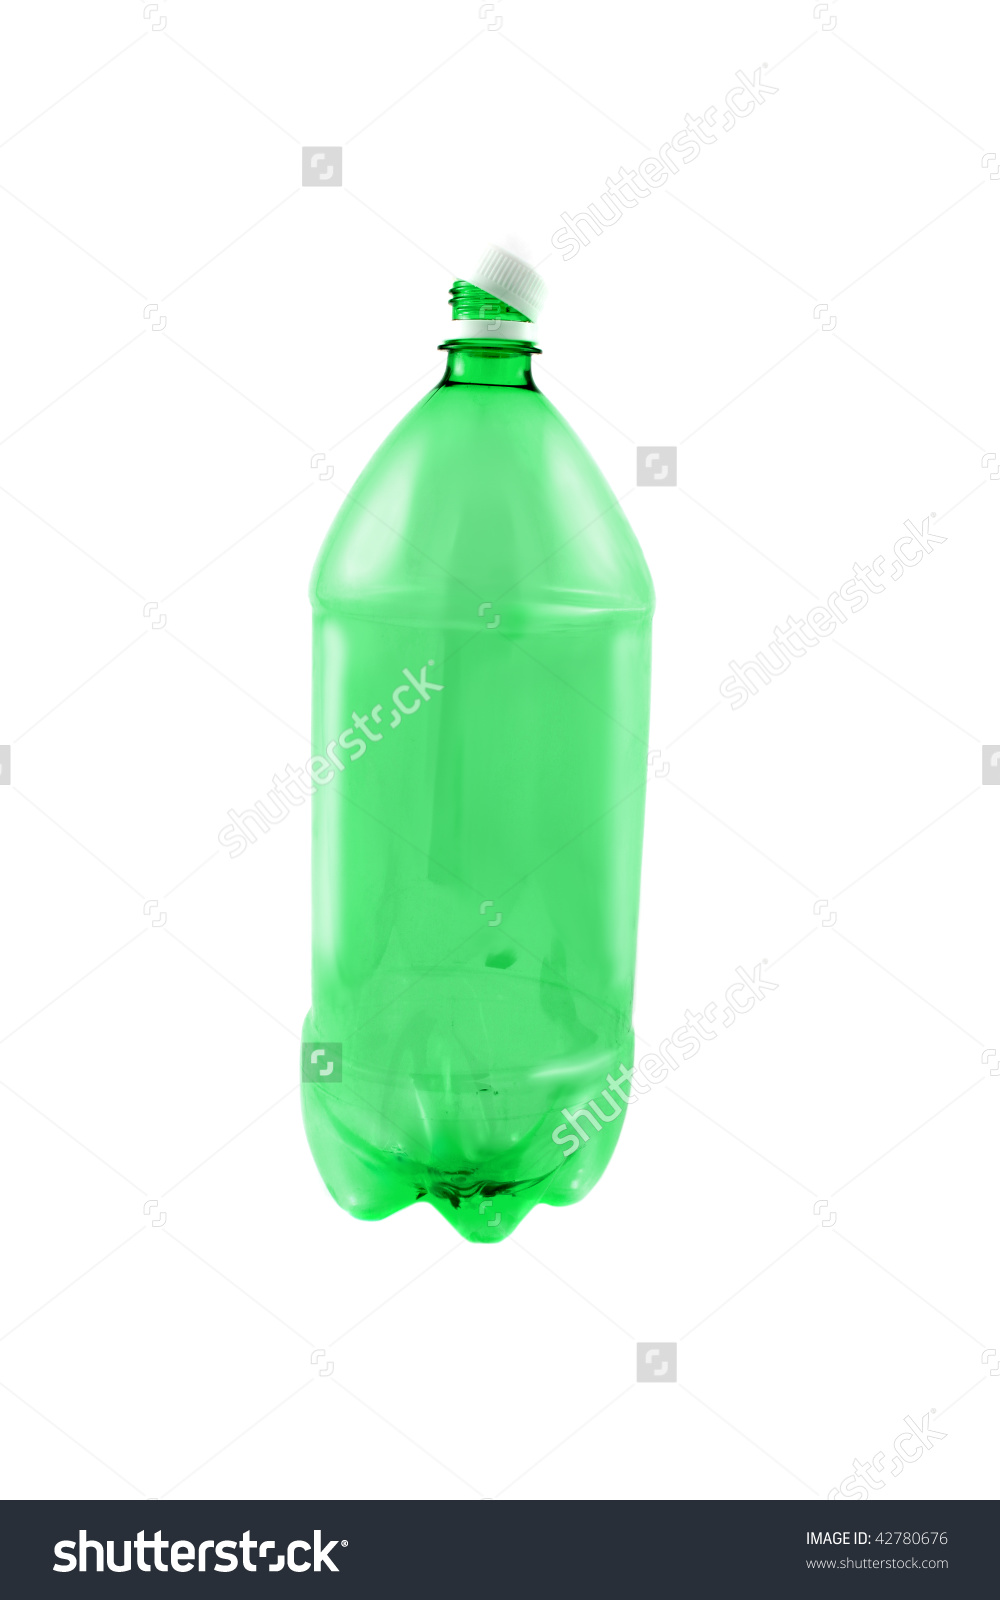 Plastic clipart 2 liter Liter Two Bottle empty soda